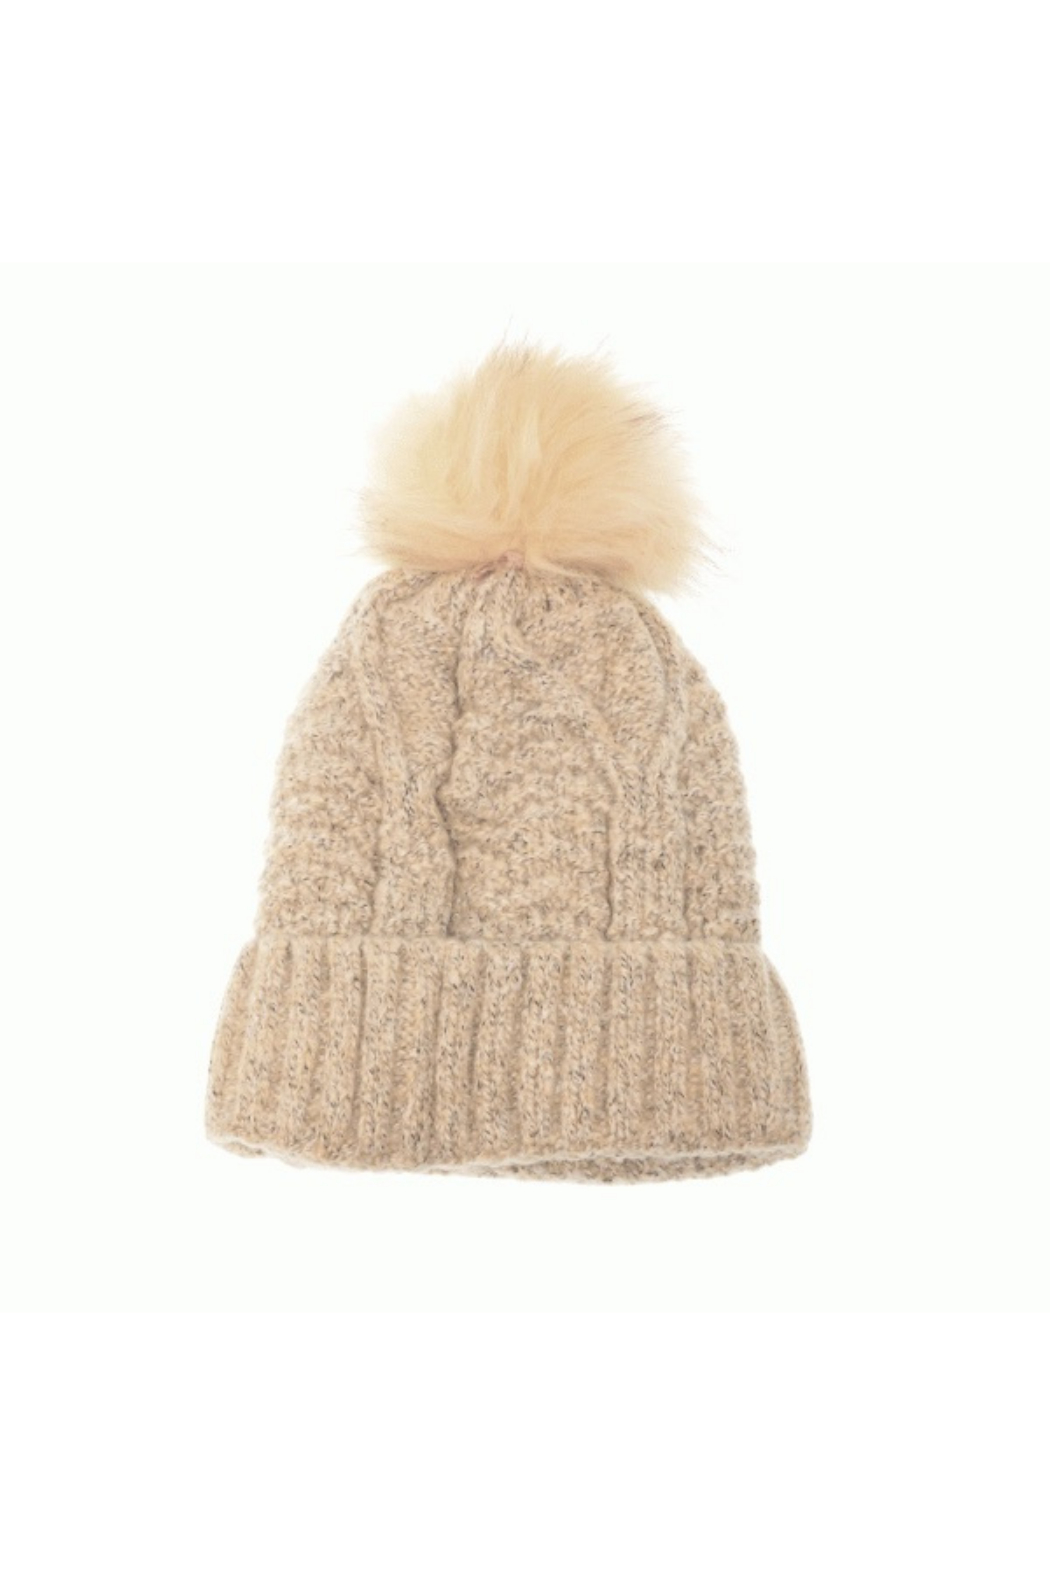 Joy Accessories Fleece Lined Knit Mix Pom Pom Hat - Front Cropped Image